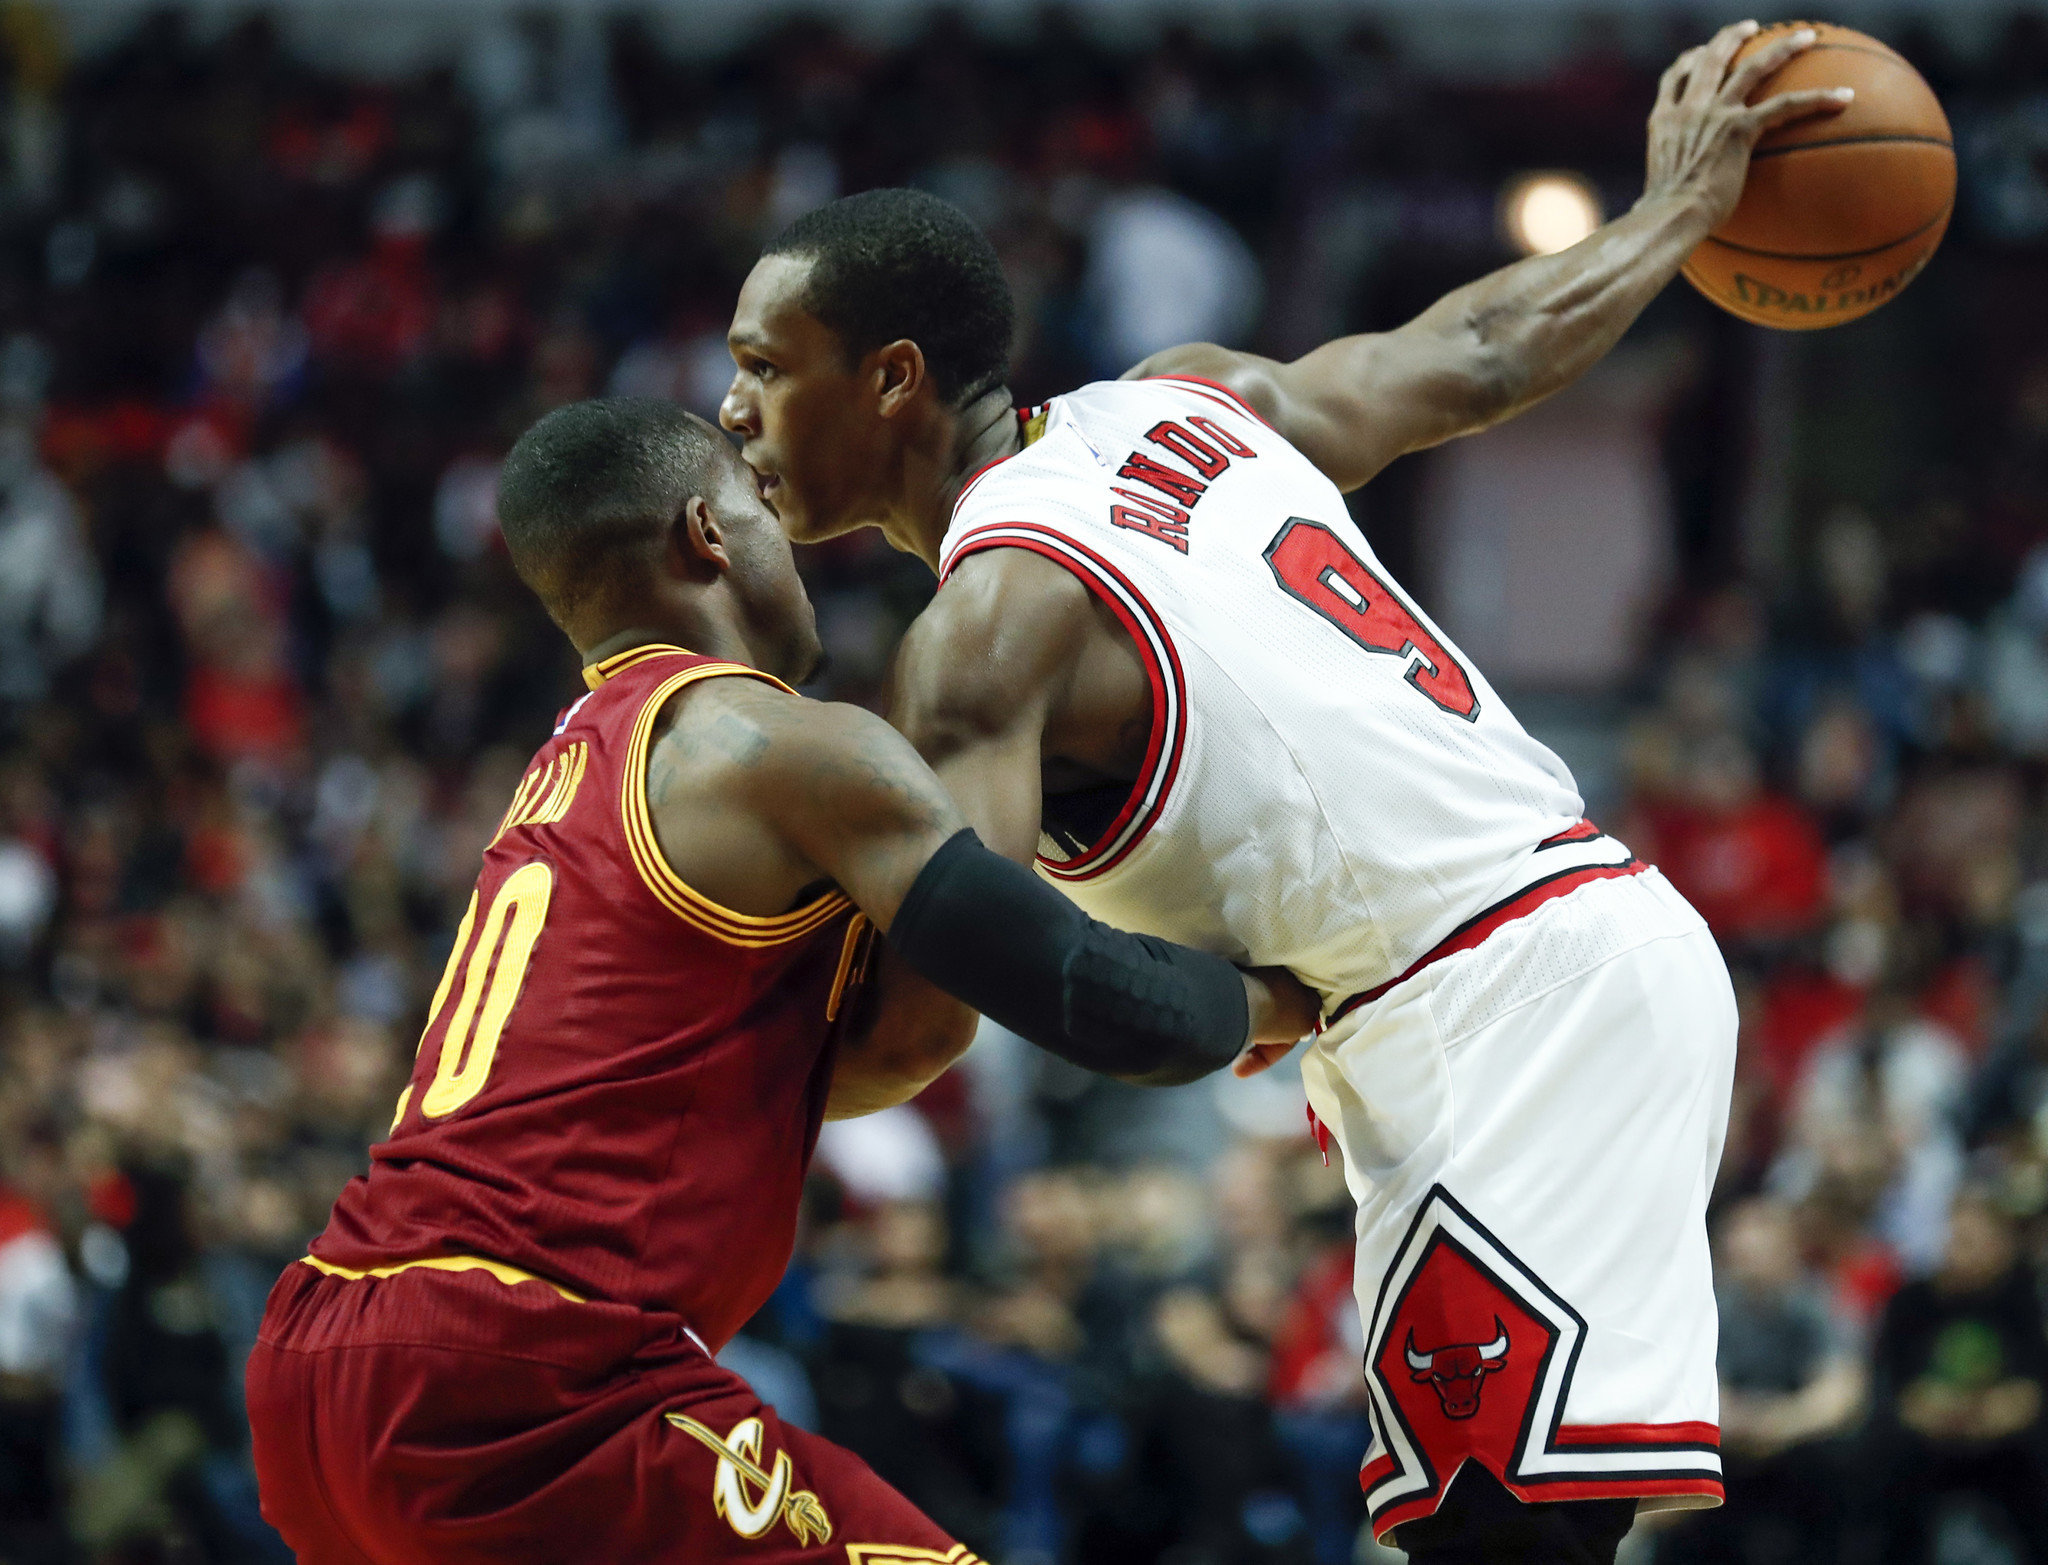 beaf2b319 Bulls improve to 2-2 with rocky preseason victory over shorthanded Cavs -  Chicago Tribune